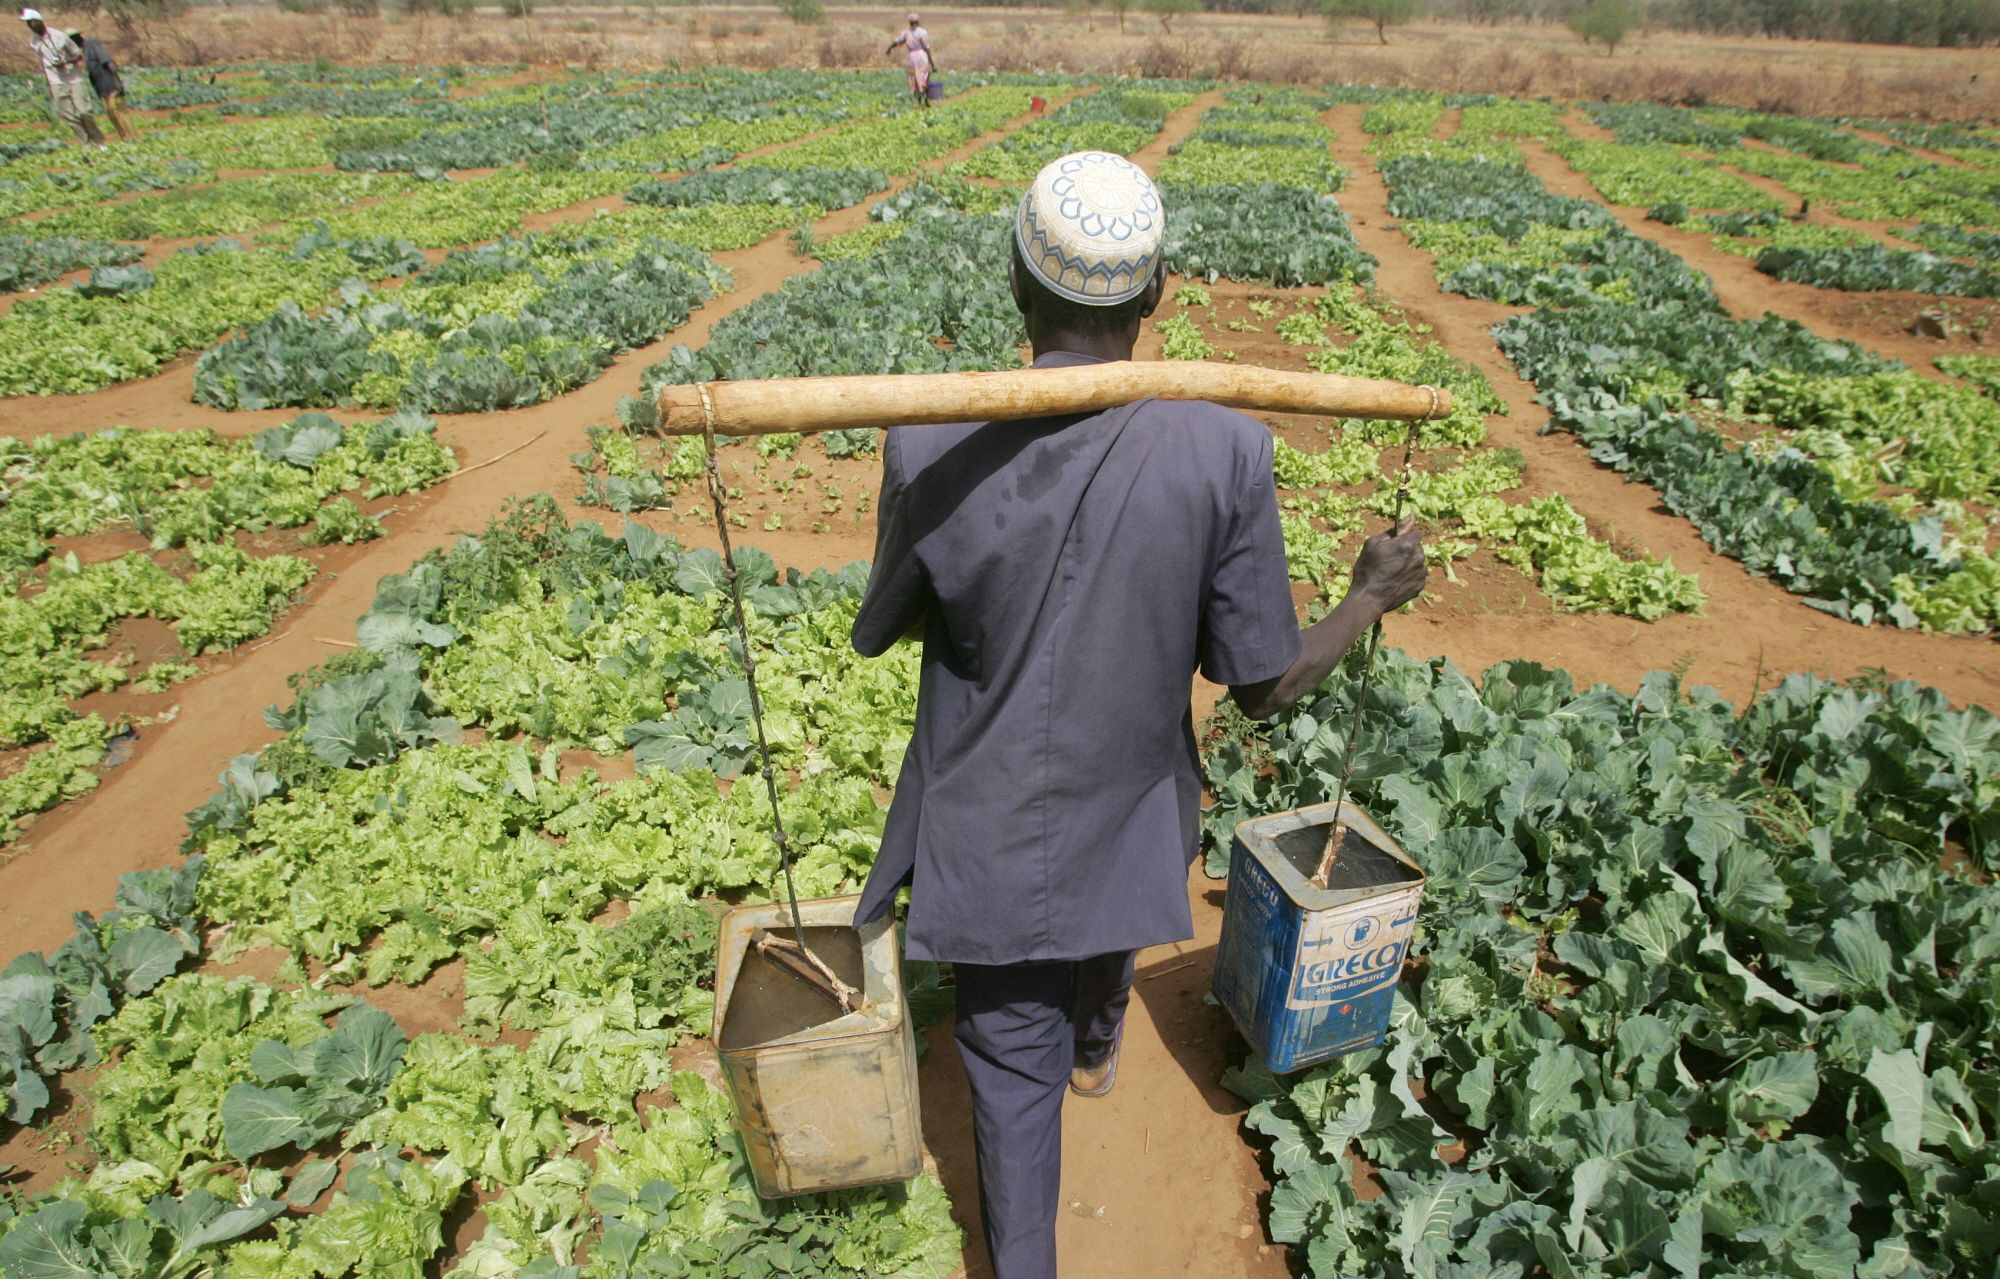 A Farmer Carrying Watering Cans To Irrigate Lettuce And Cabbage